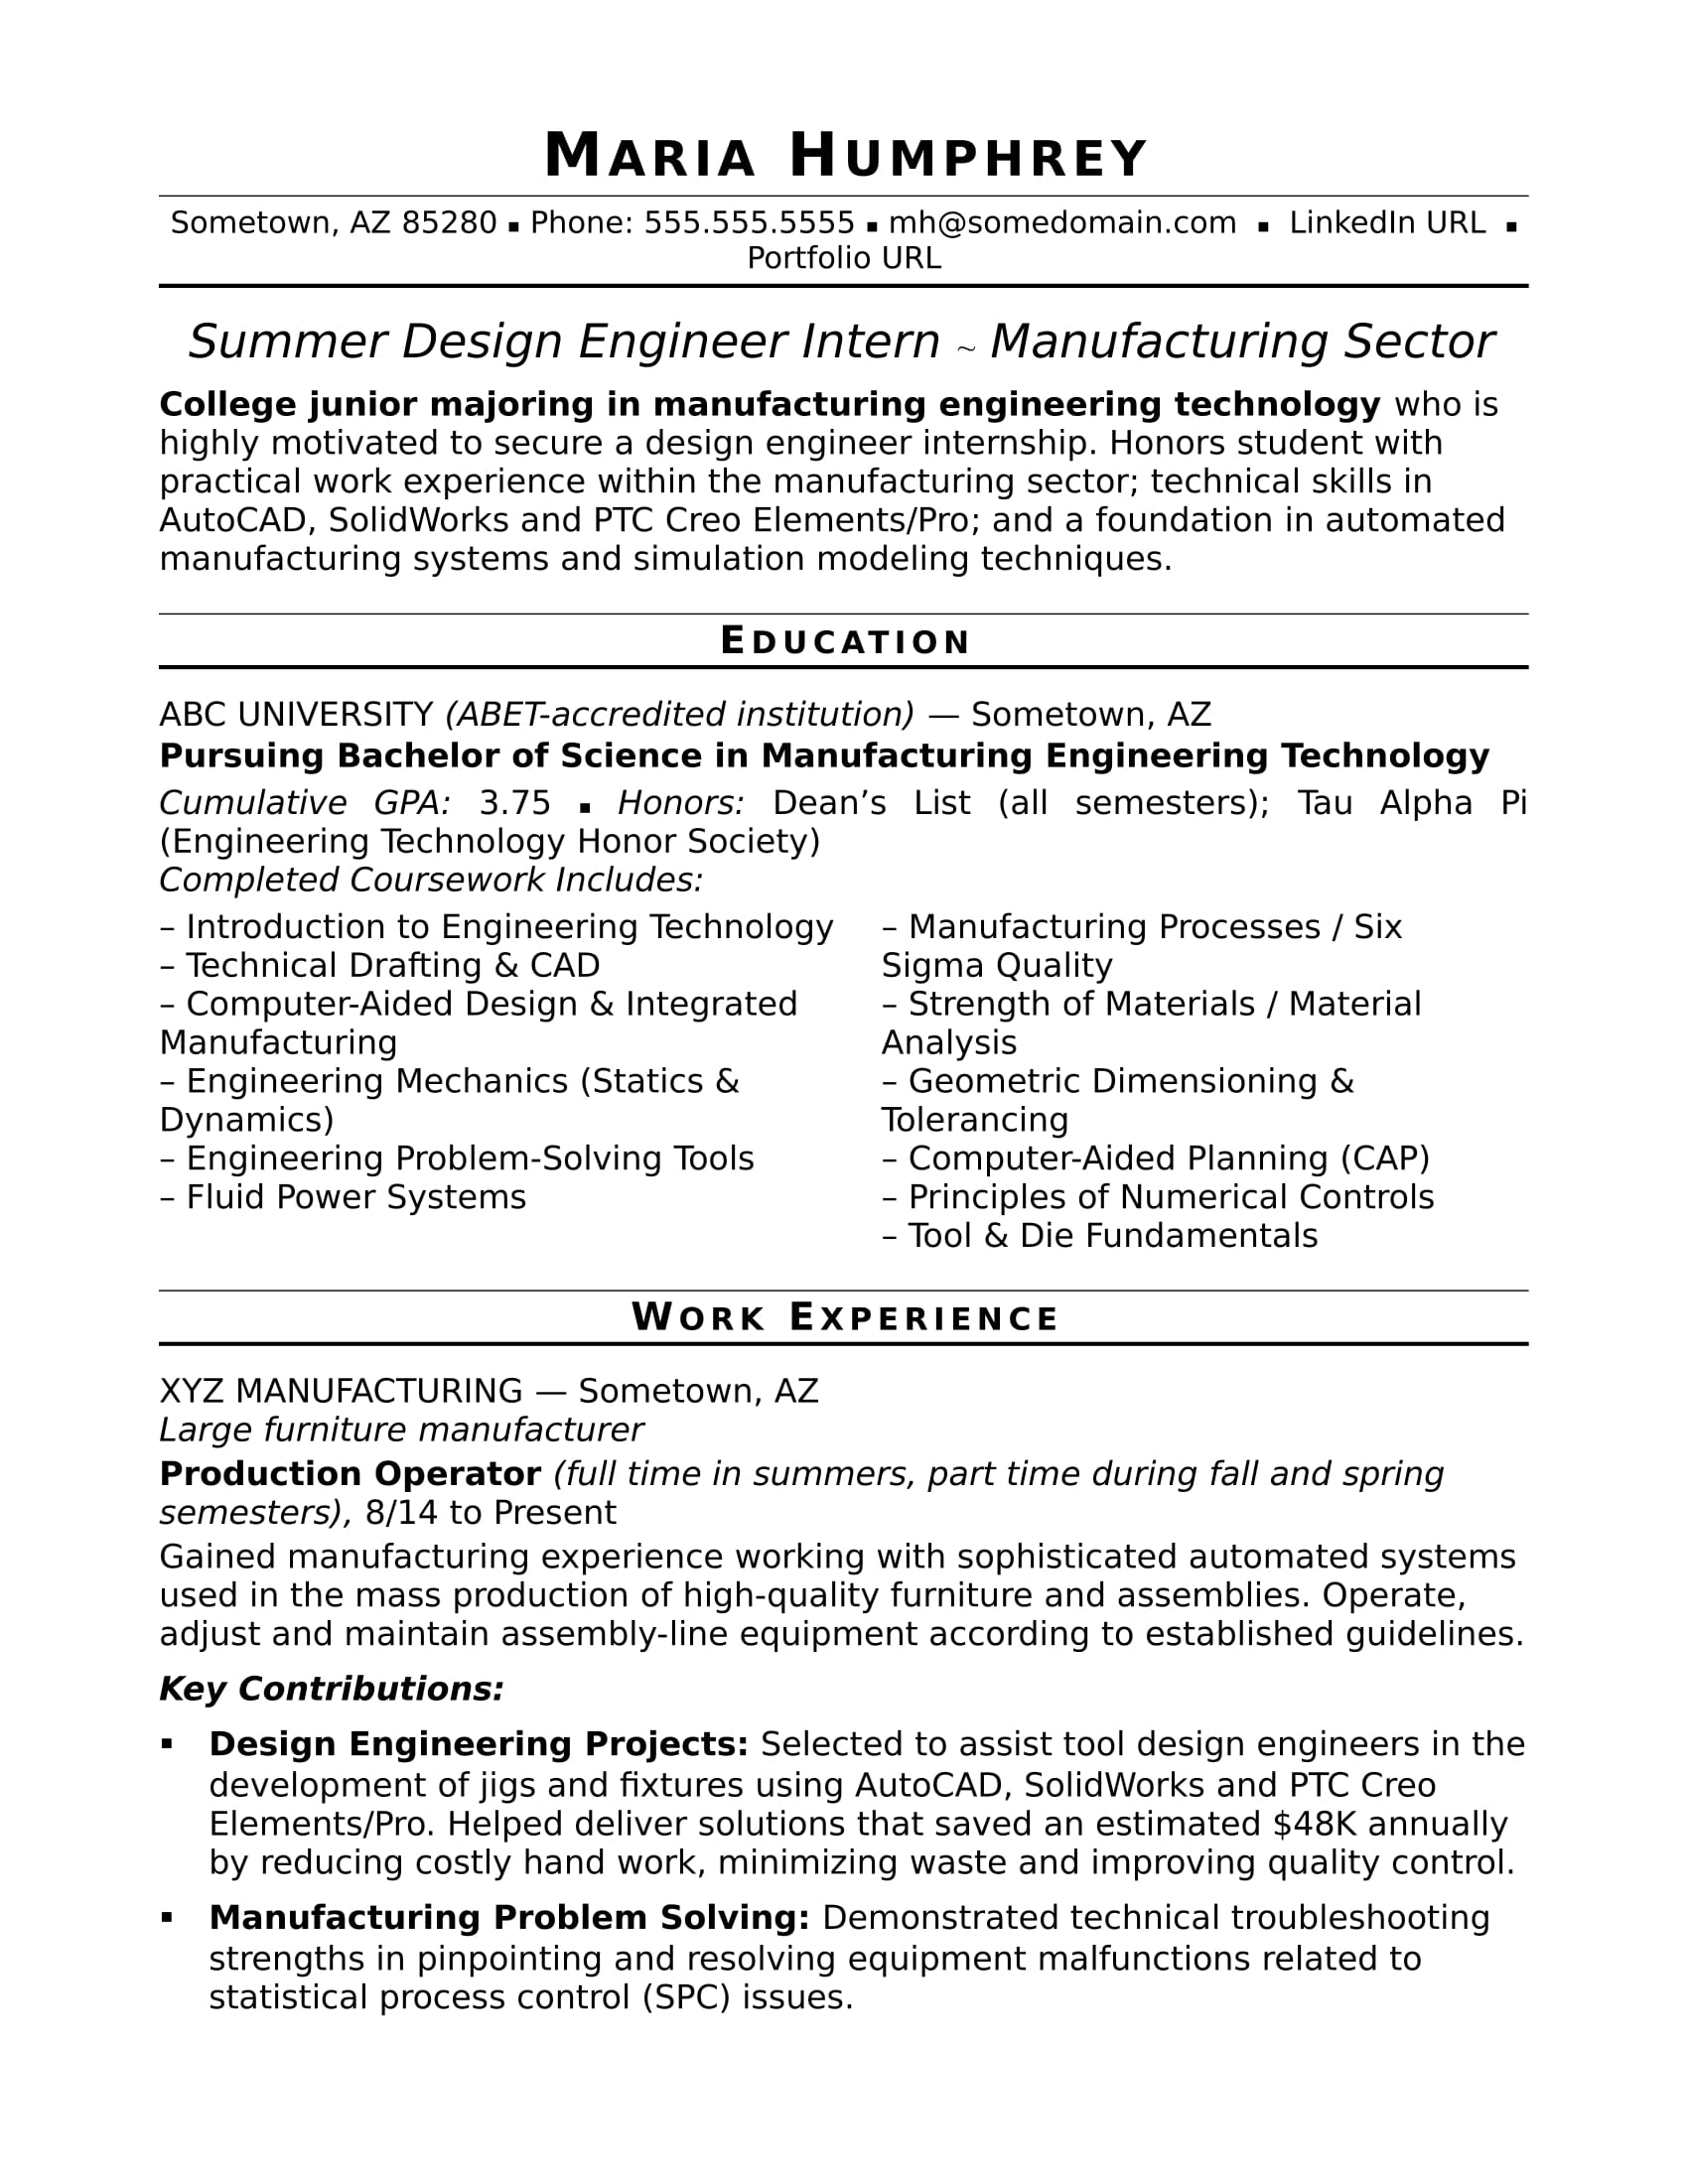 sample resume for an entry level design engineer - Design Engineer Resume